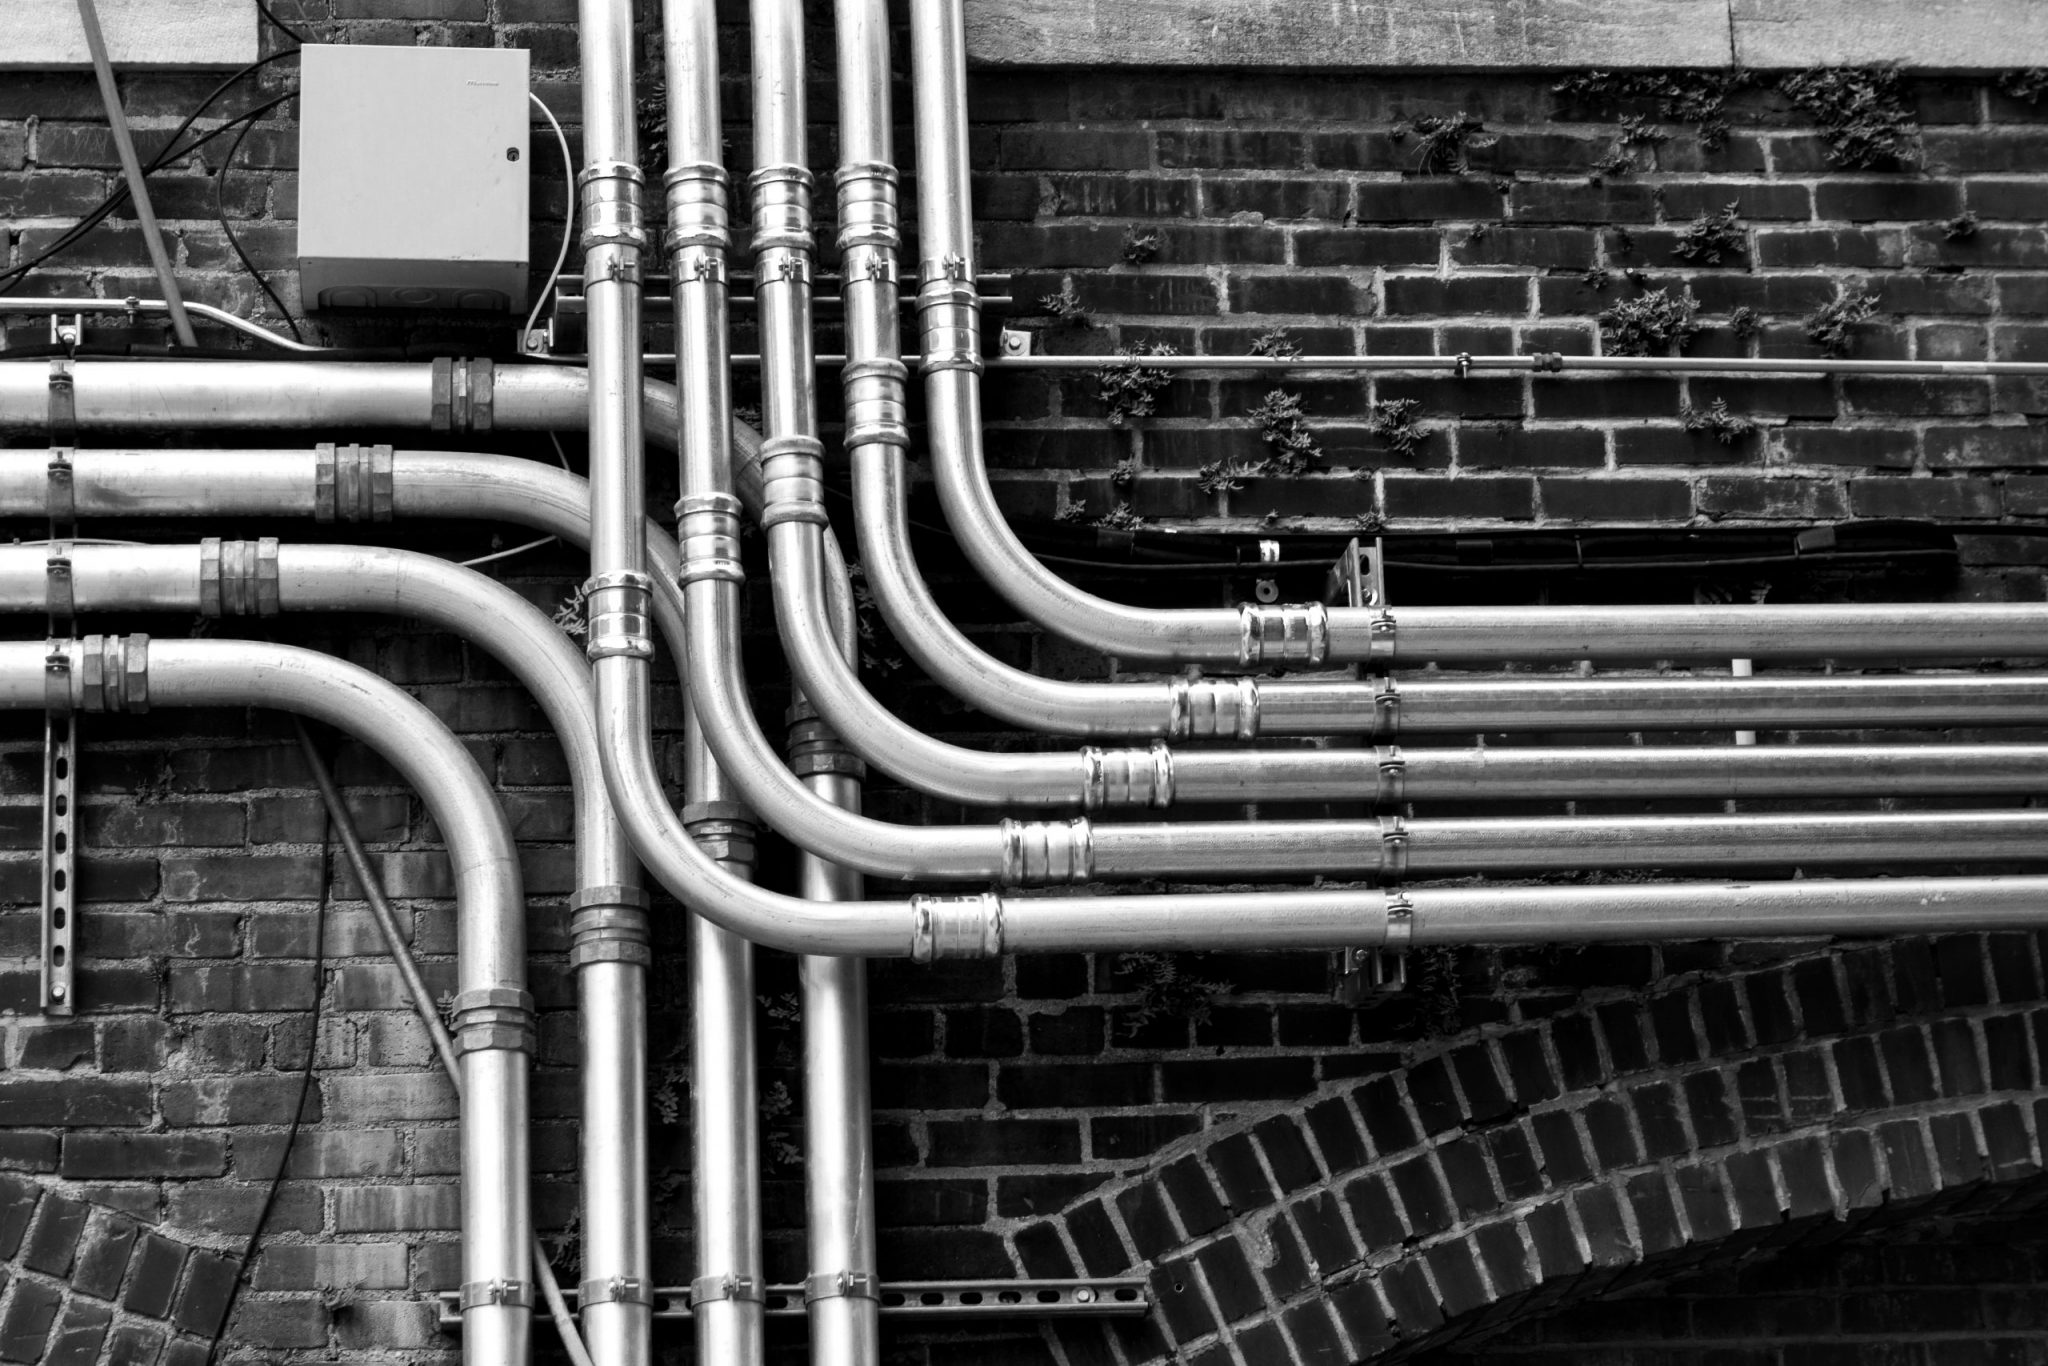 10 types of plumbing pipes for your home